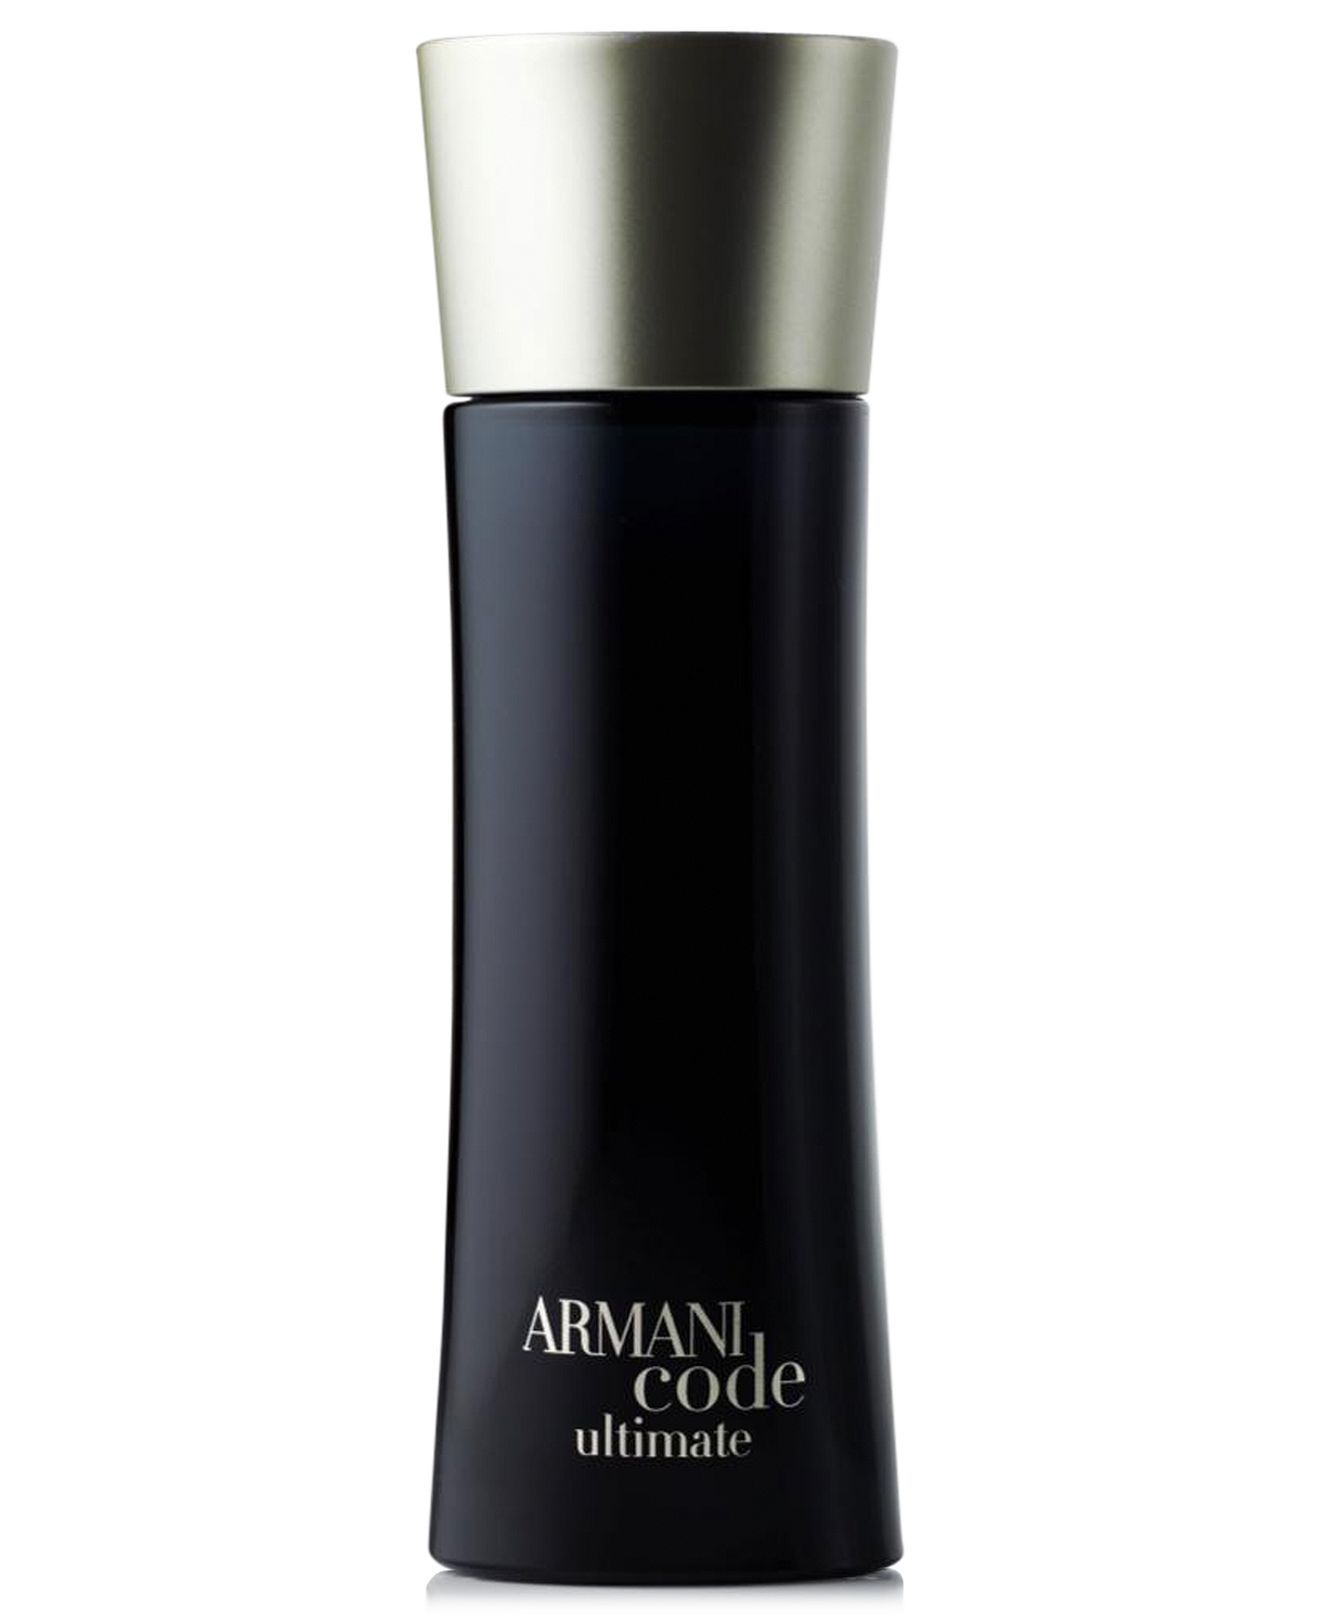 Armani Code Ultimate Fragrance Collection for Men - Only at Macy's - Cologne & Grooming - Beauty - Macy's